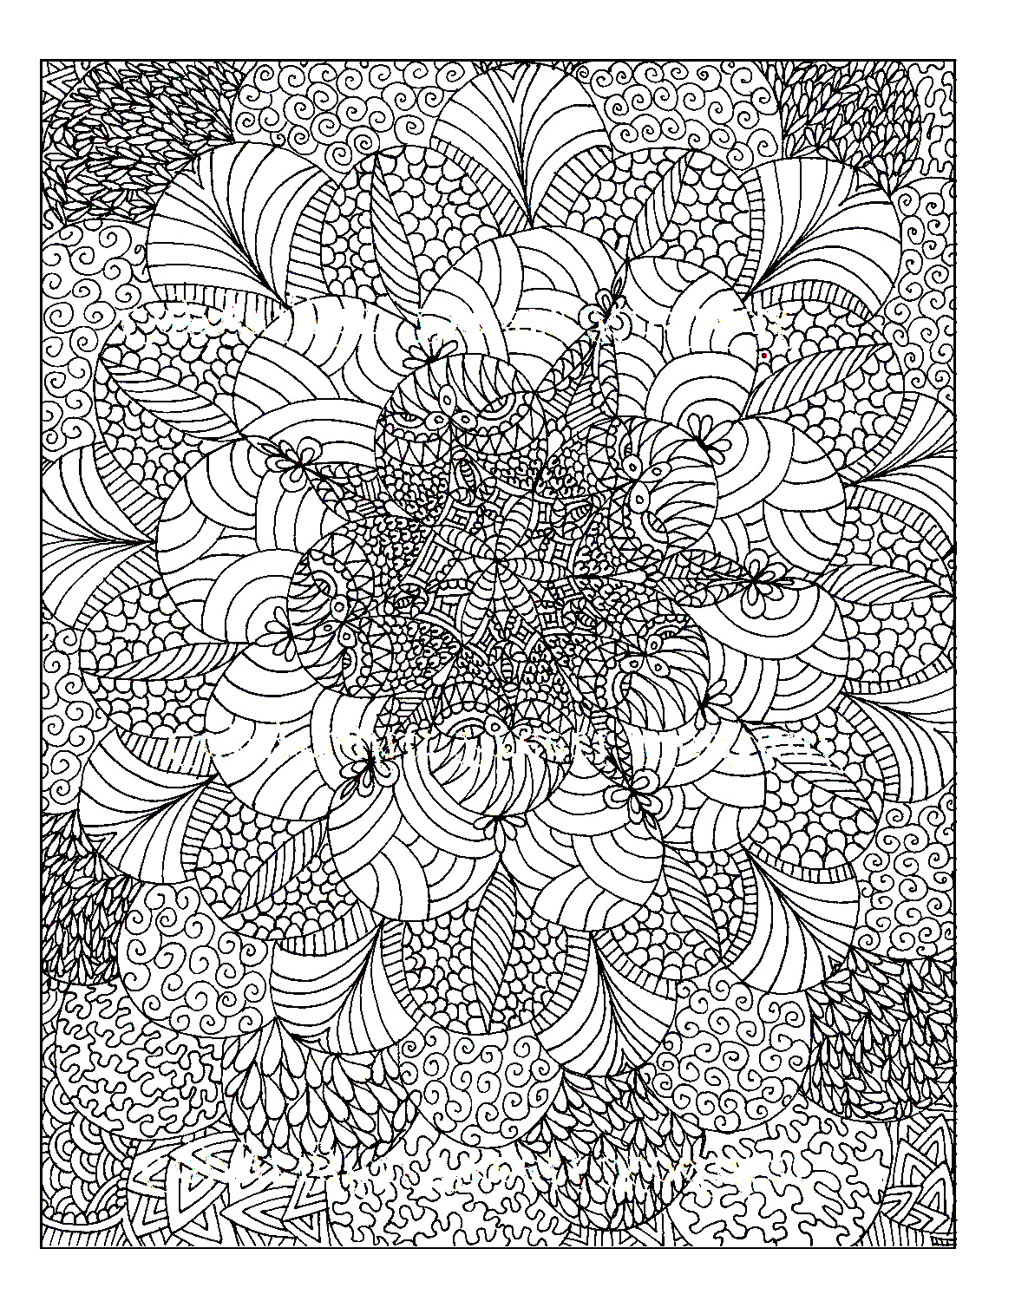 motivation and emotion book 2015 meditative colouring and stress